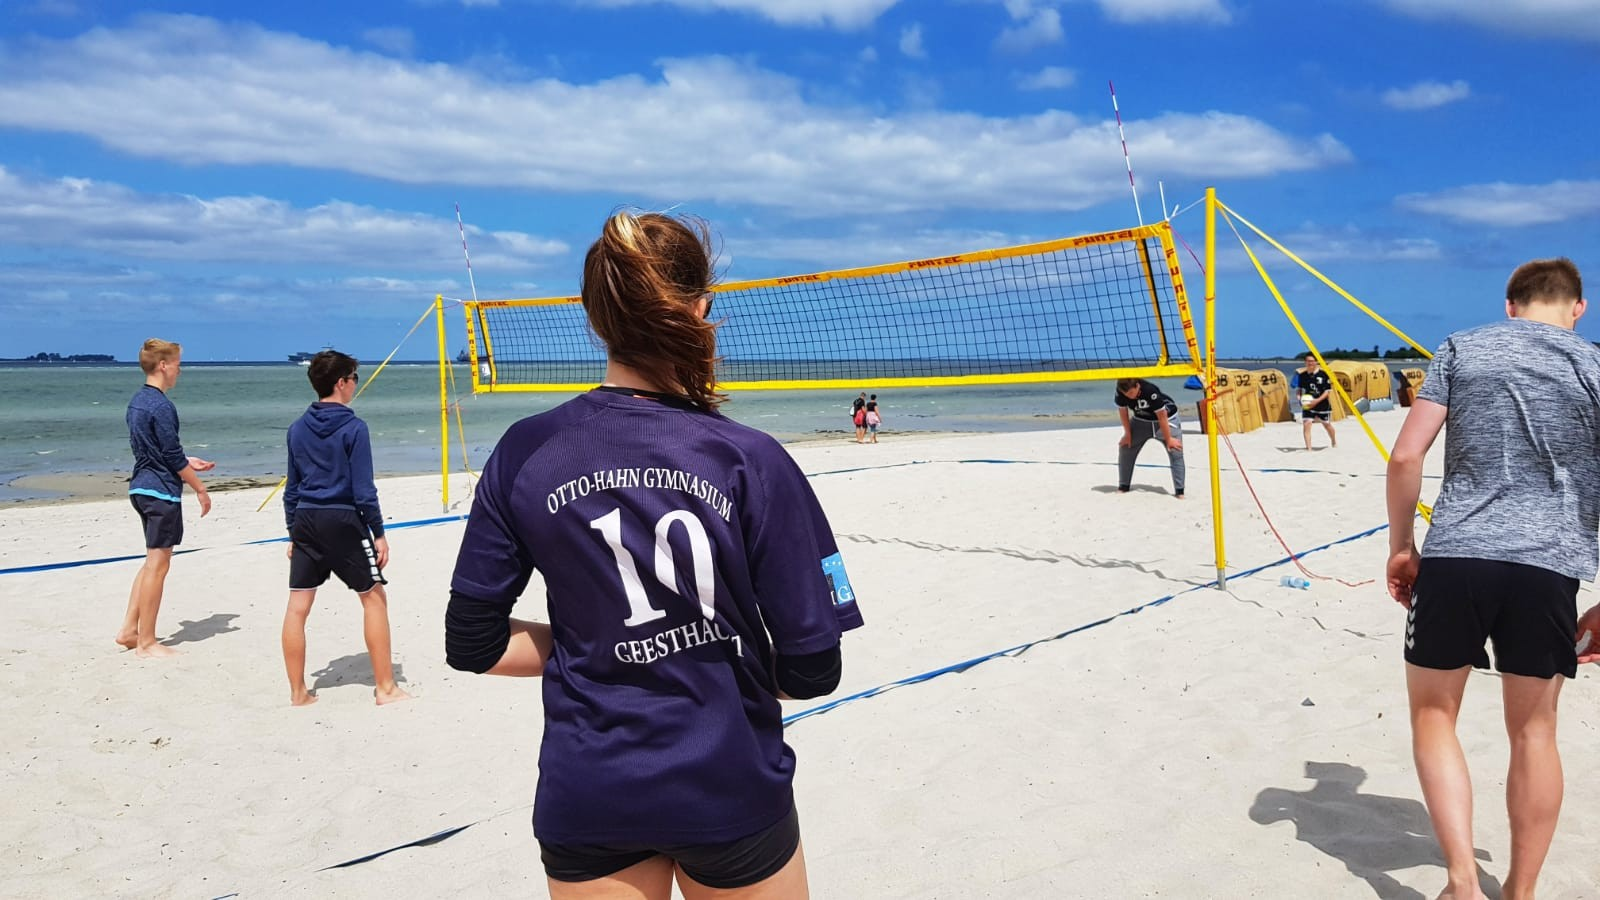 2018_06_15_Beach-Volleyball-Land_2